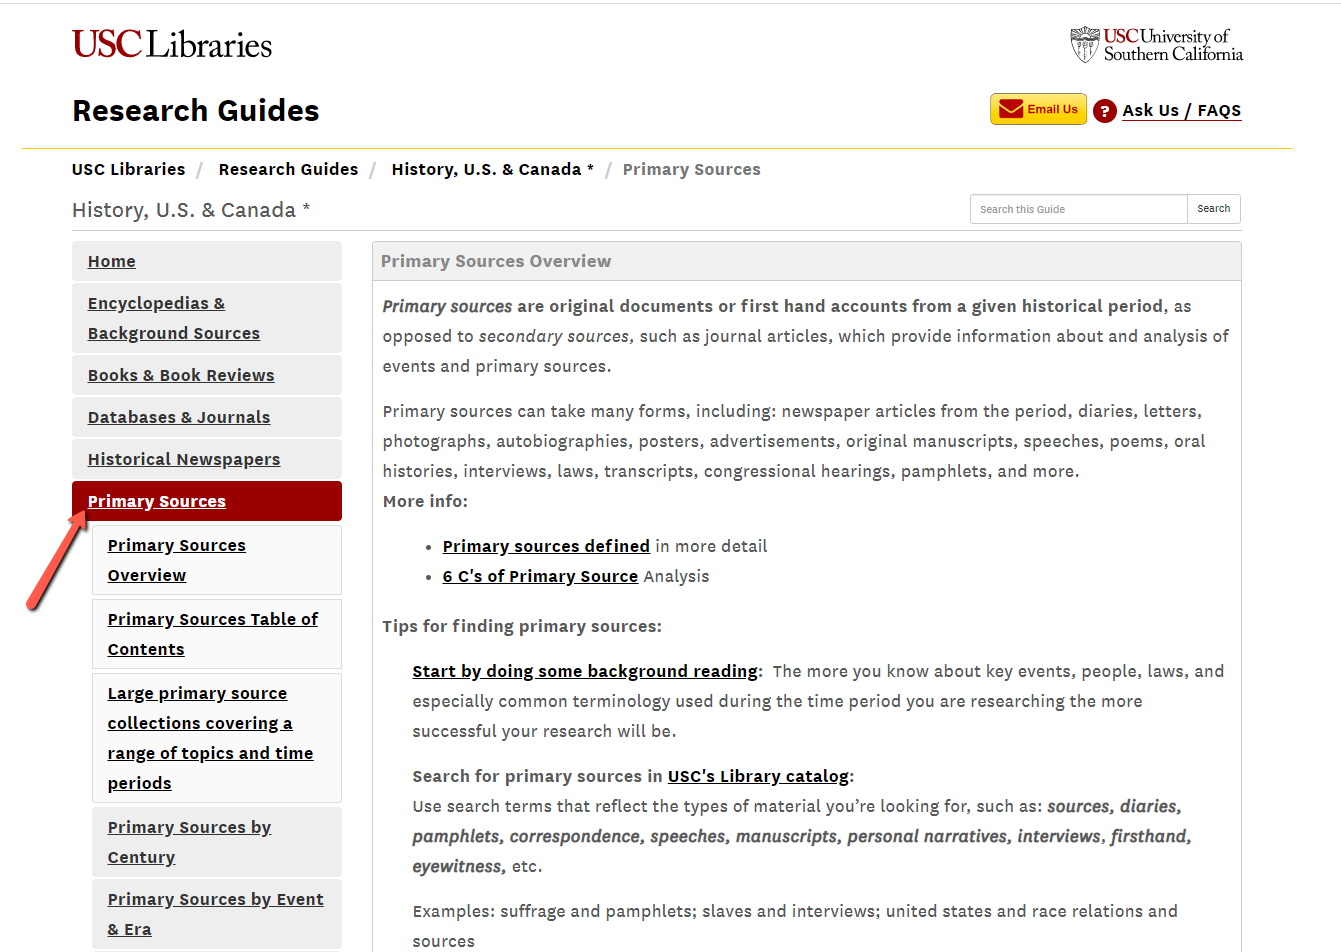 Image of History Research Guide Primary Sources Page